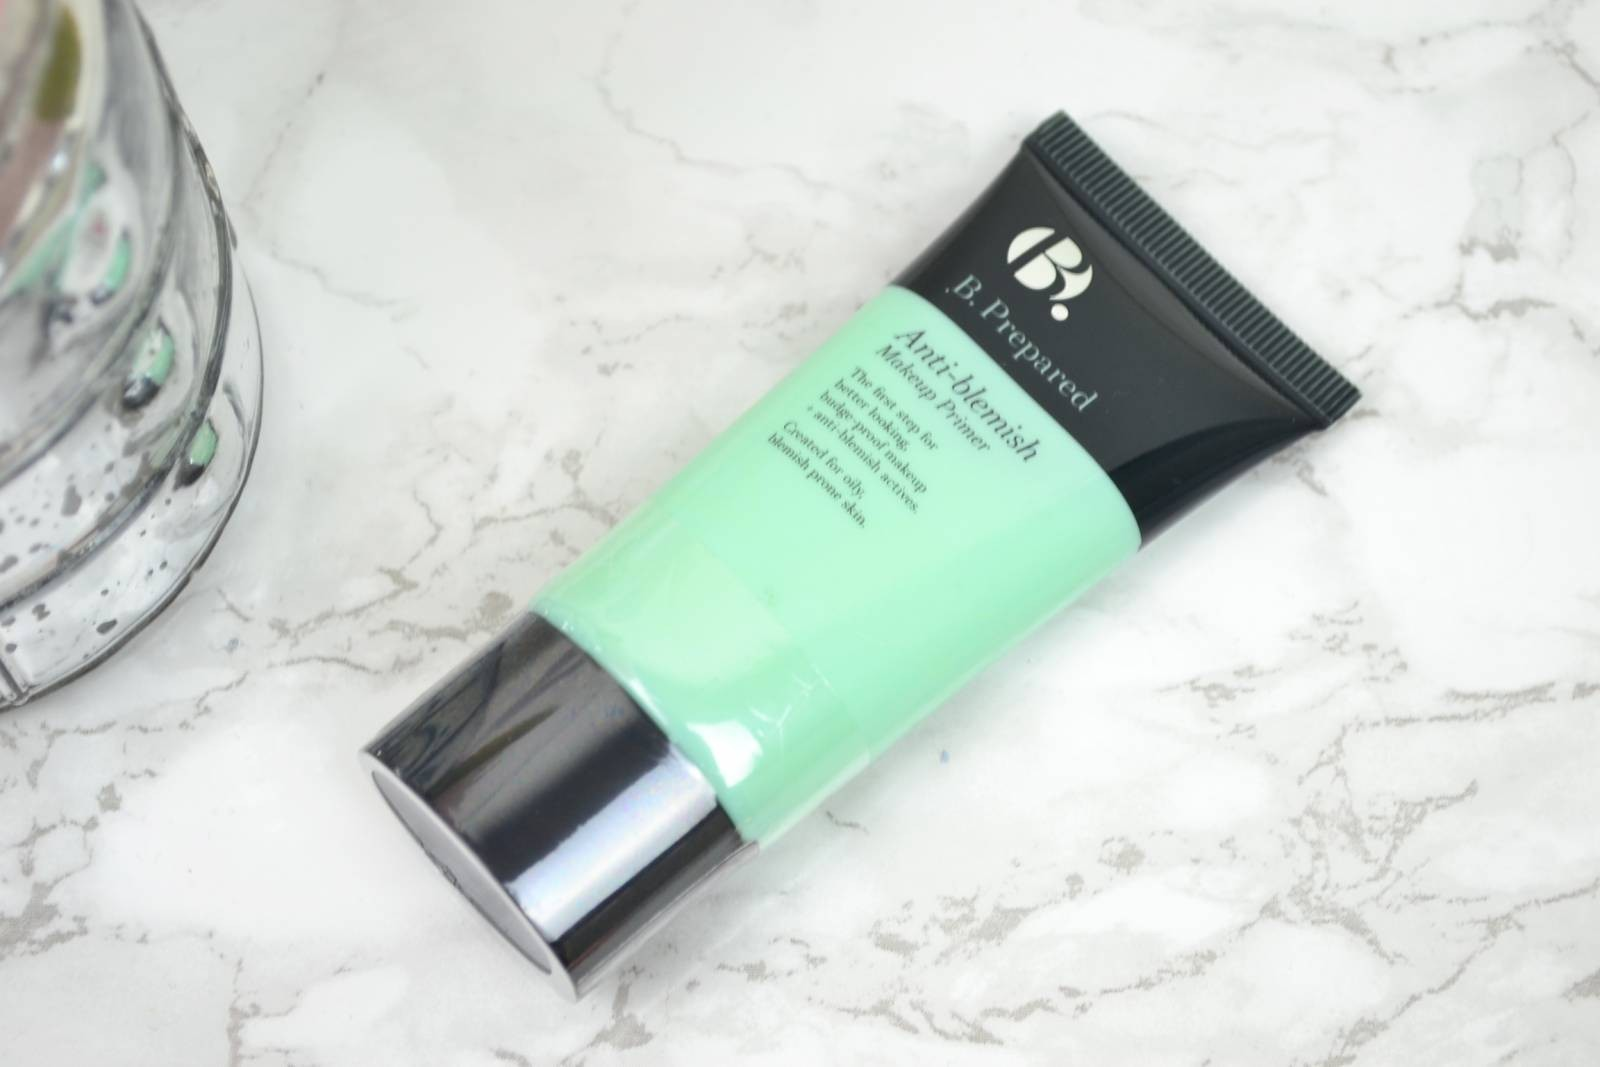 b-anti-blemish-primer-review